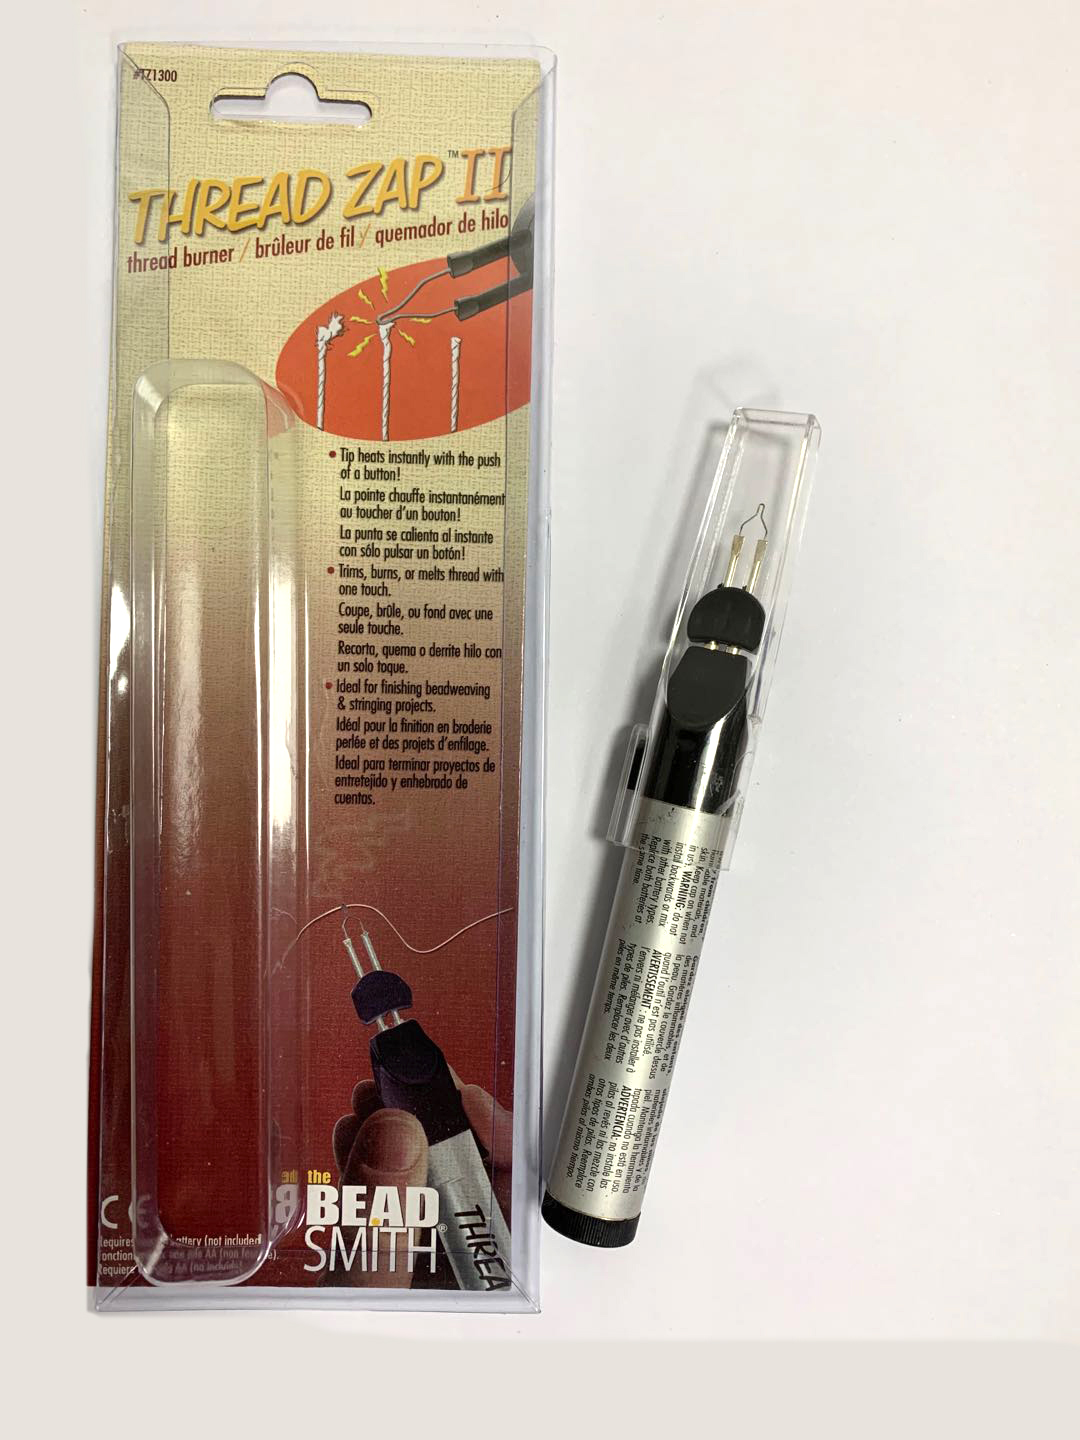 Bead Smith Thread Zap II 2 Welding Crayons Thread Burner For Jewelry Tools Welding Wax Pen